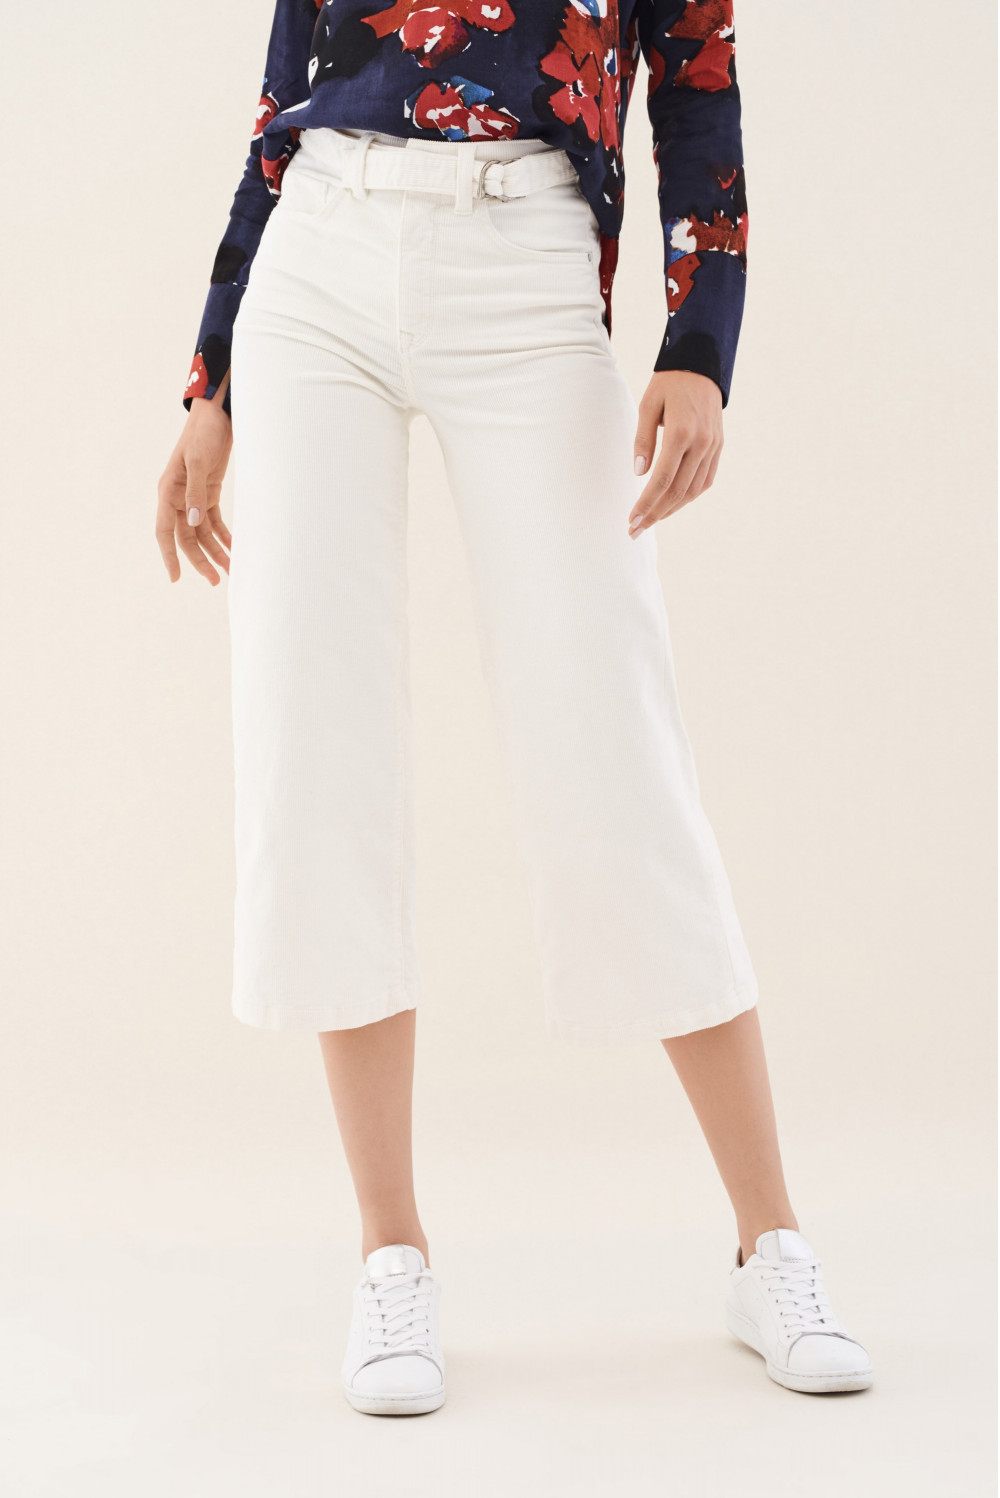 Corduroy Secret Glamour Push In flare culotte trousers